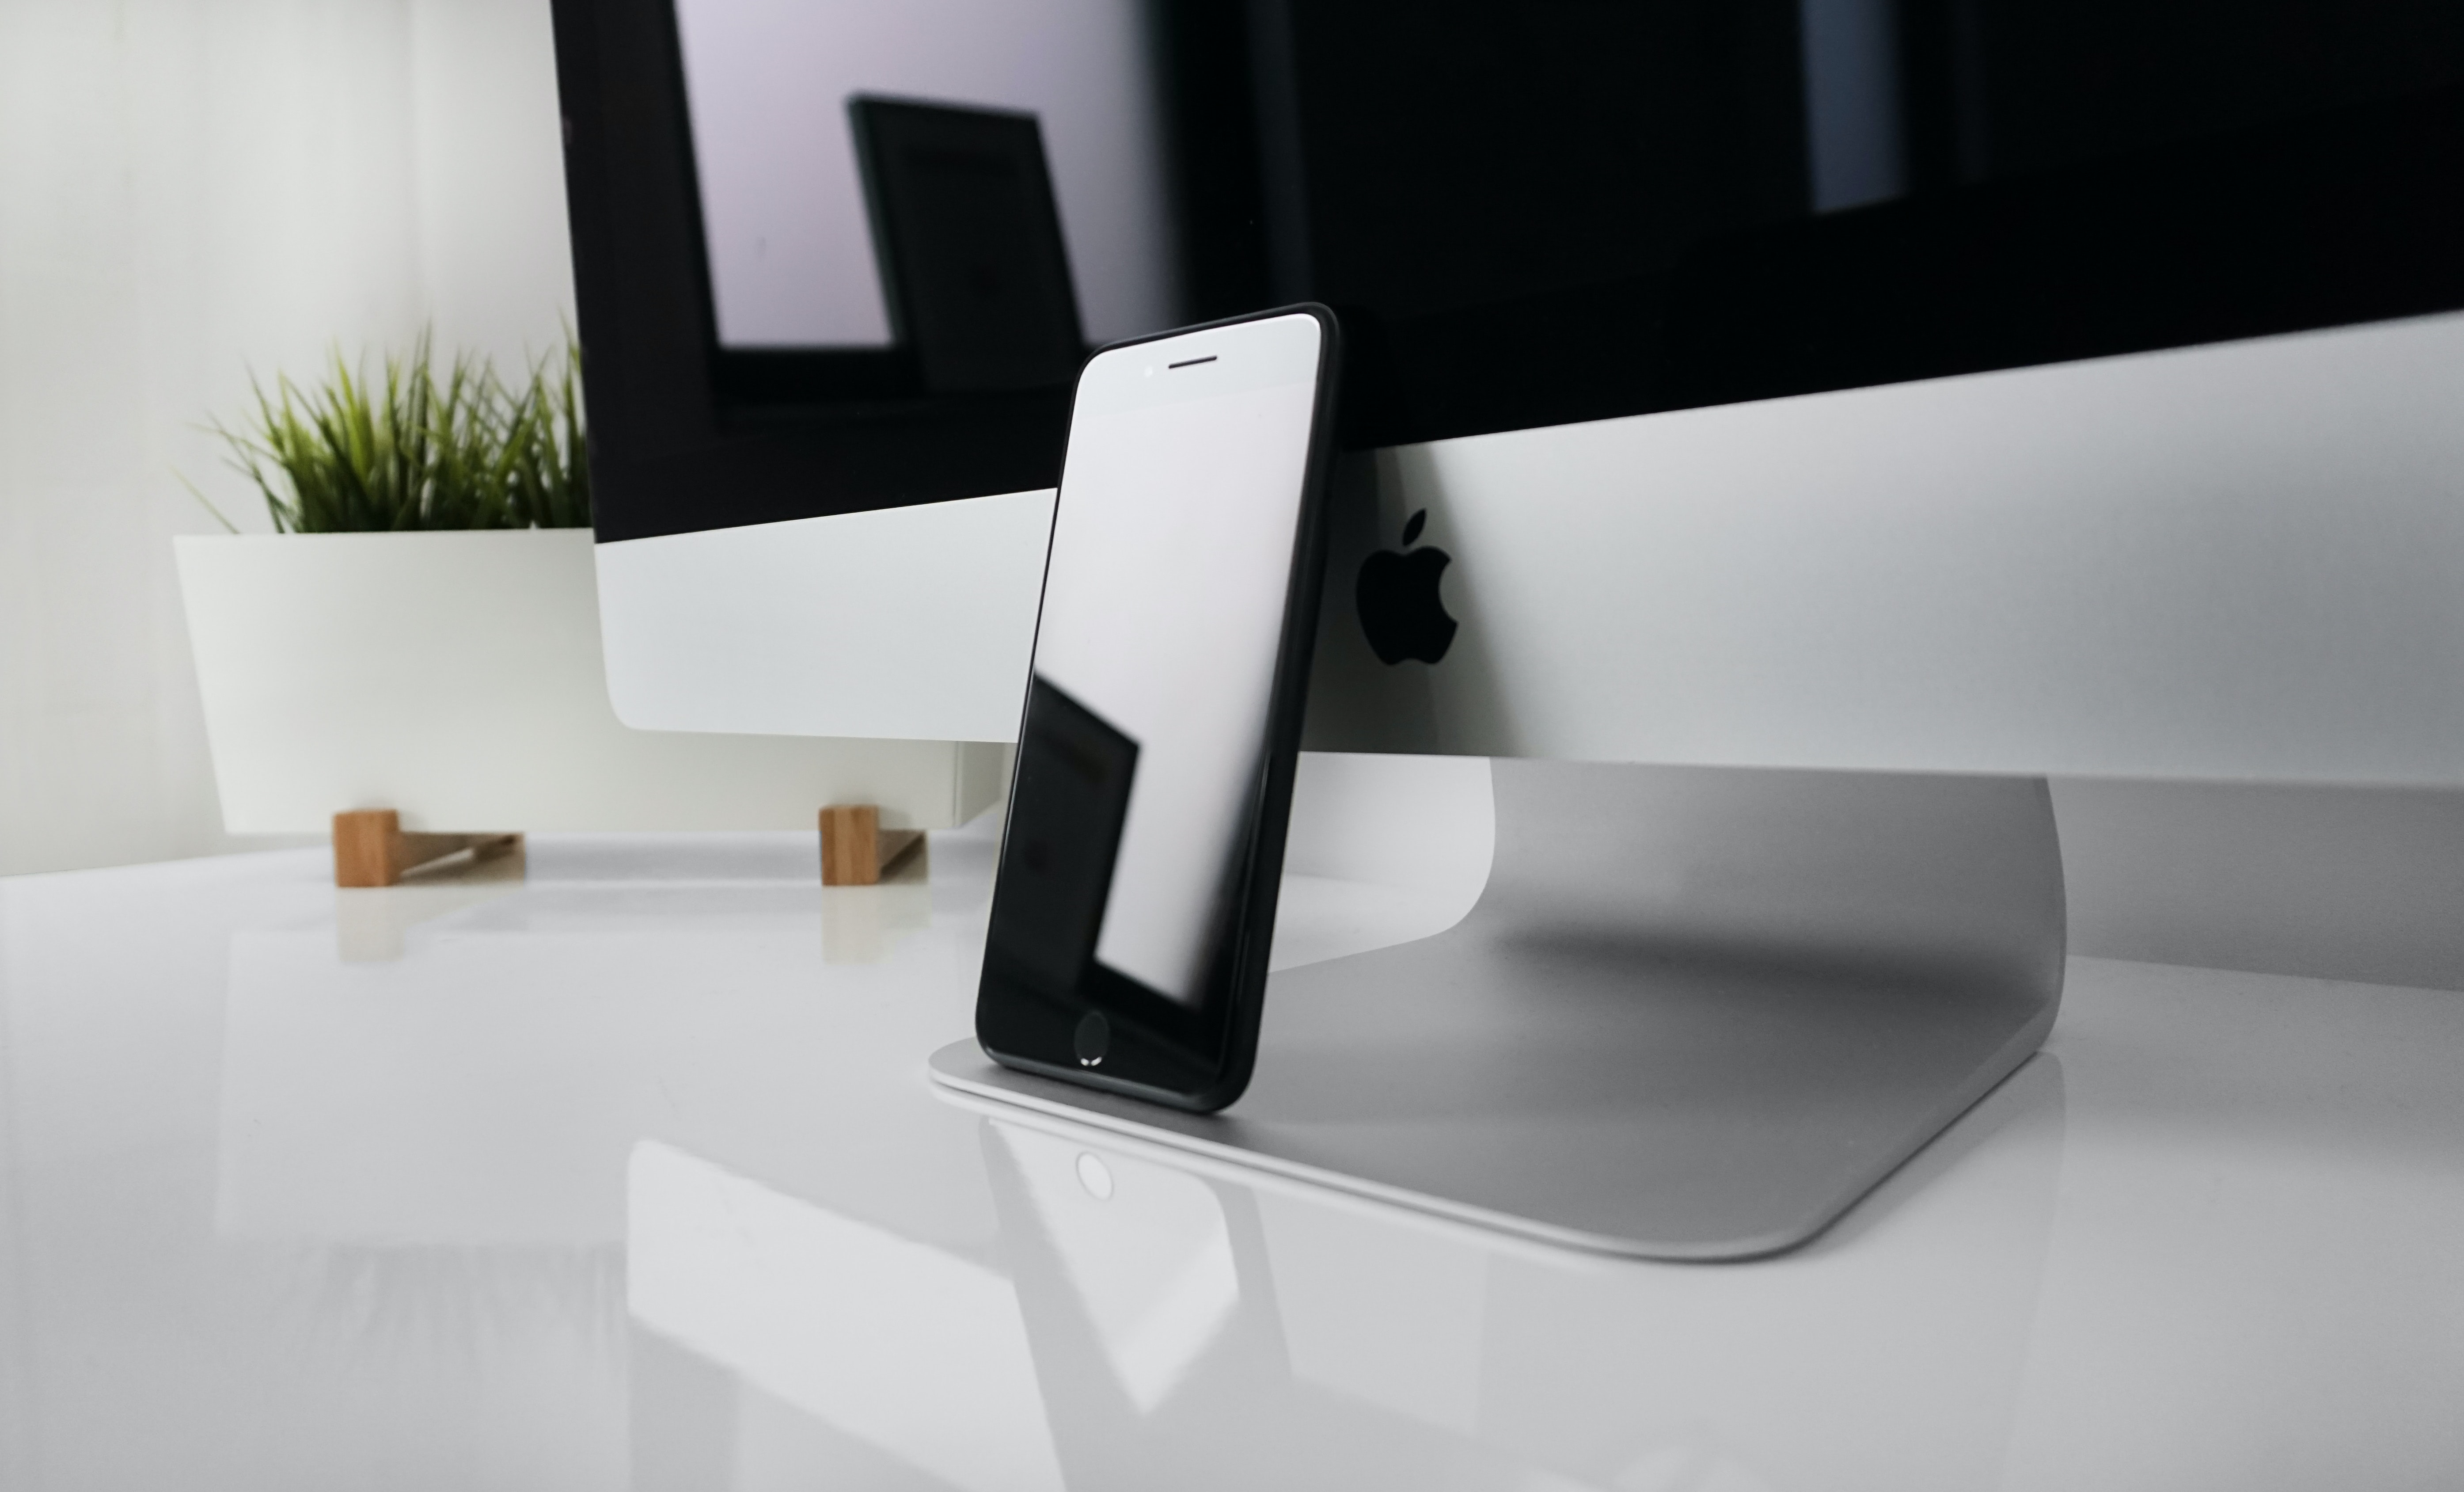 An iPhone leaning against an iMac on a white glossy desk